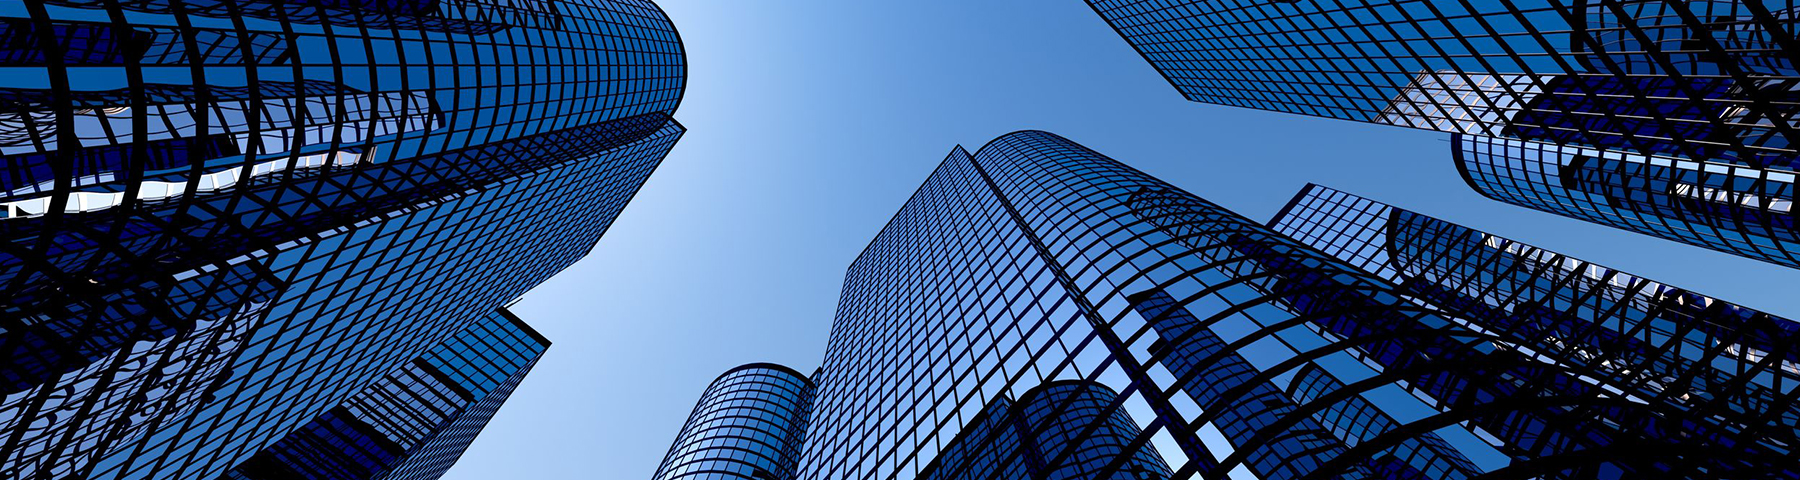 Blue skyscrapers denoting success and clients